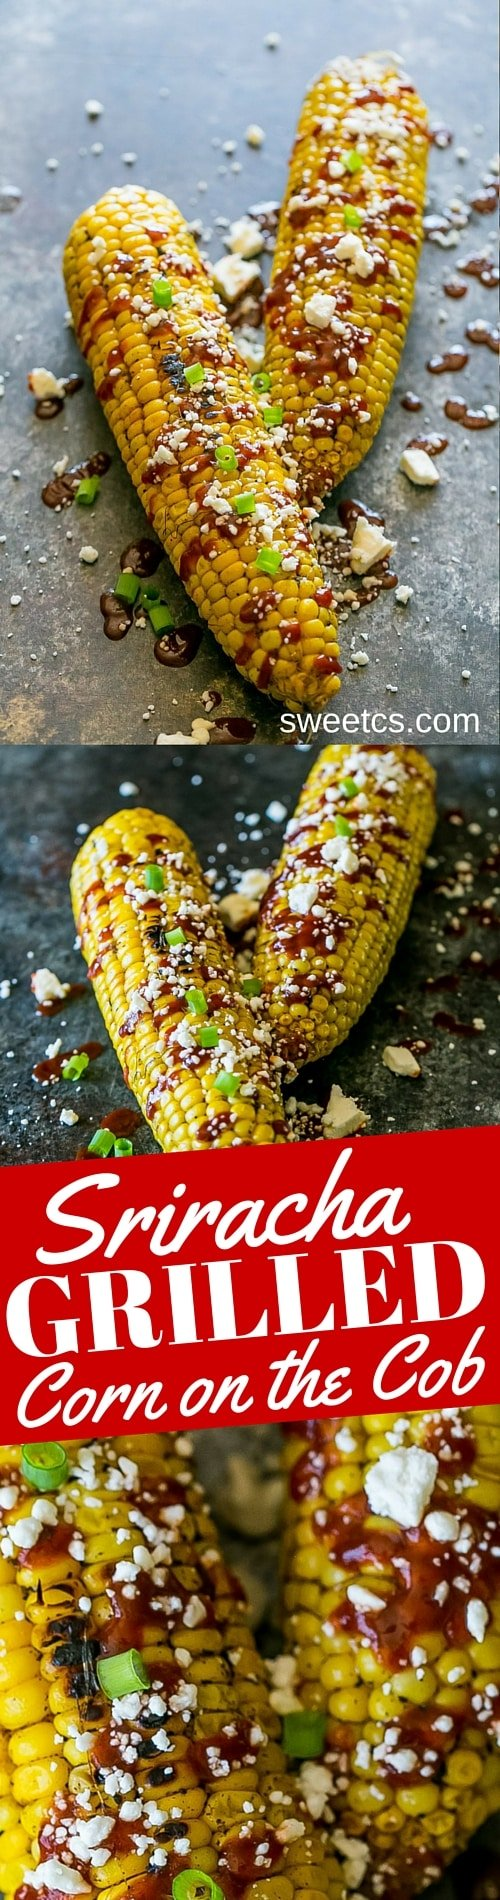 Sriracha cheese grilled corn - this grilled corn on the cob is so delicious and easy!